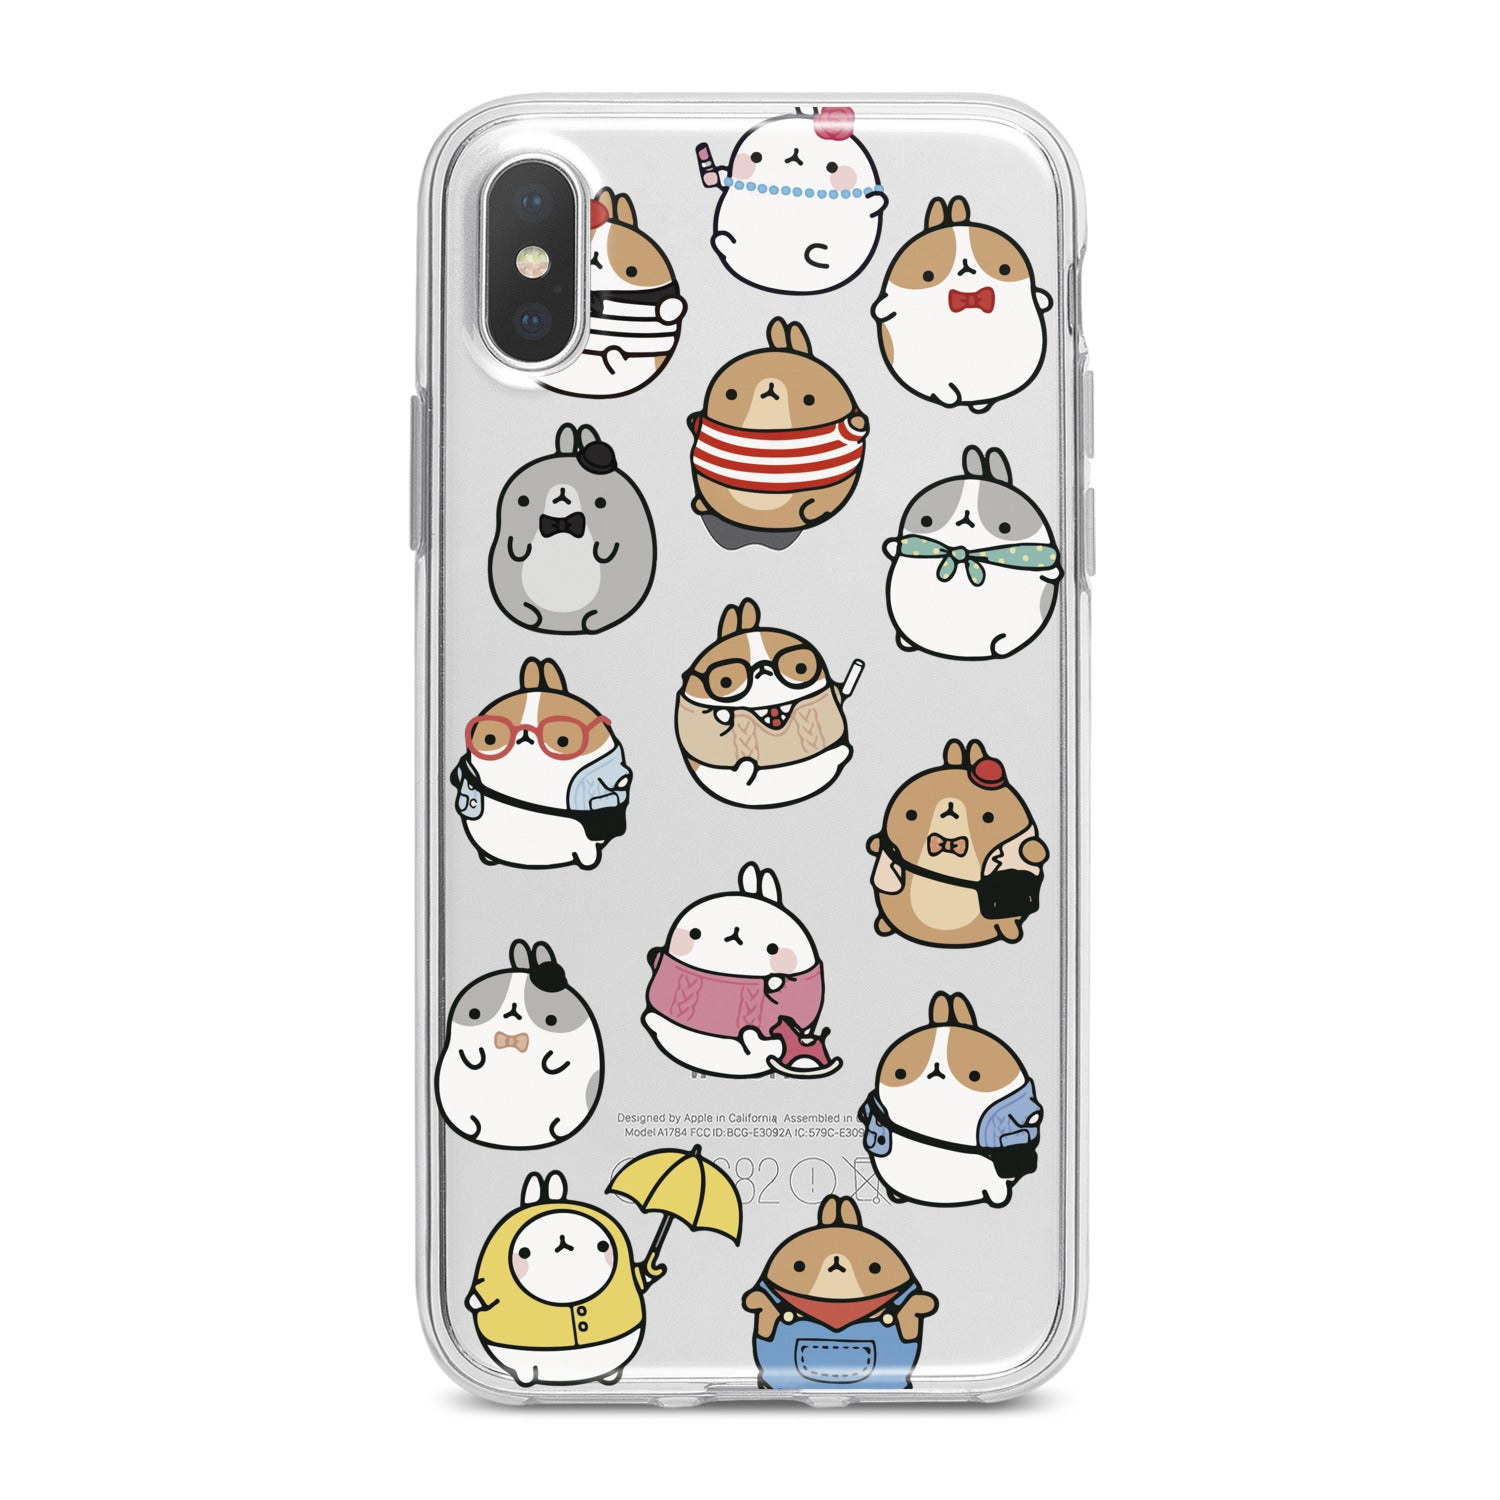 Lex Altern Kawaii Cartoon Phone Case for your iPhone & Android phone.